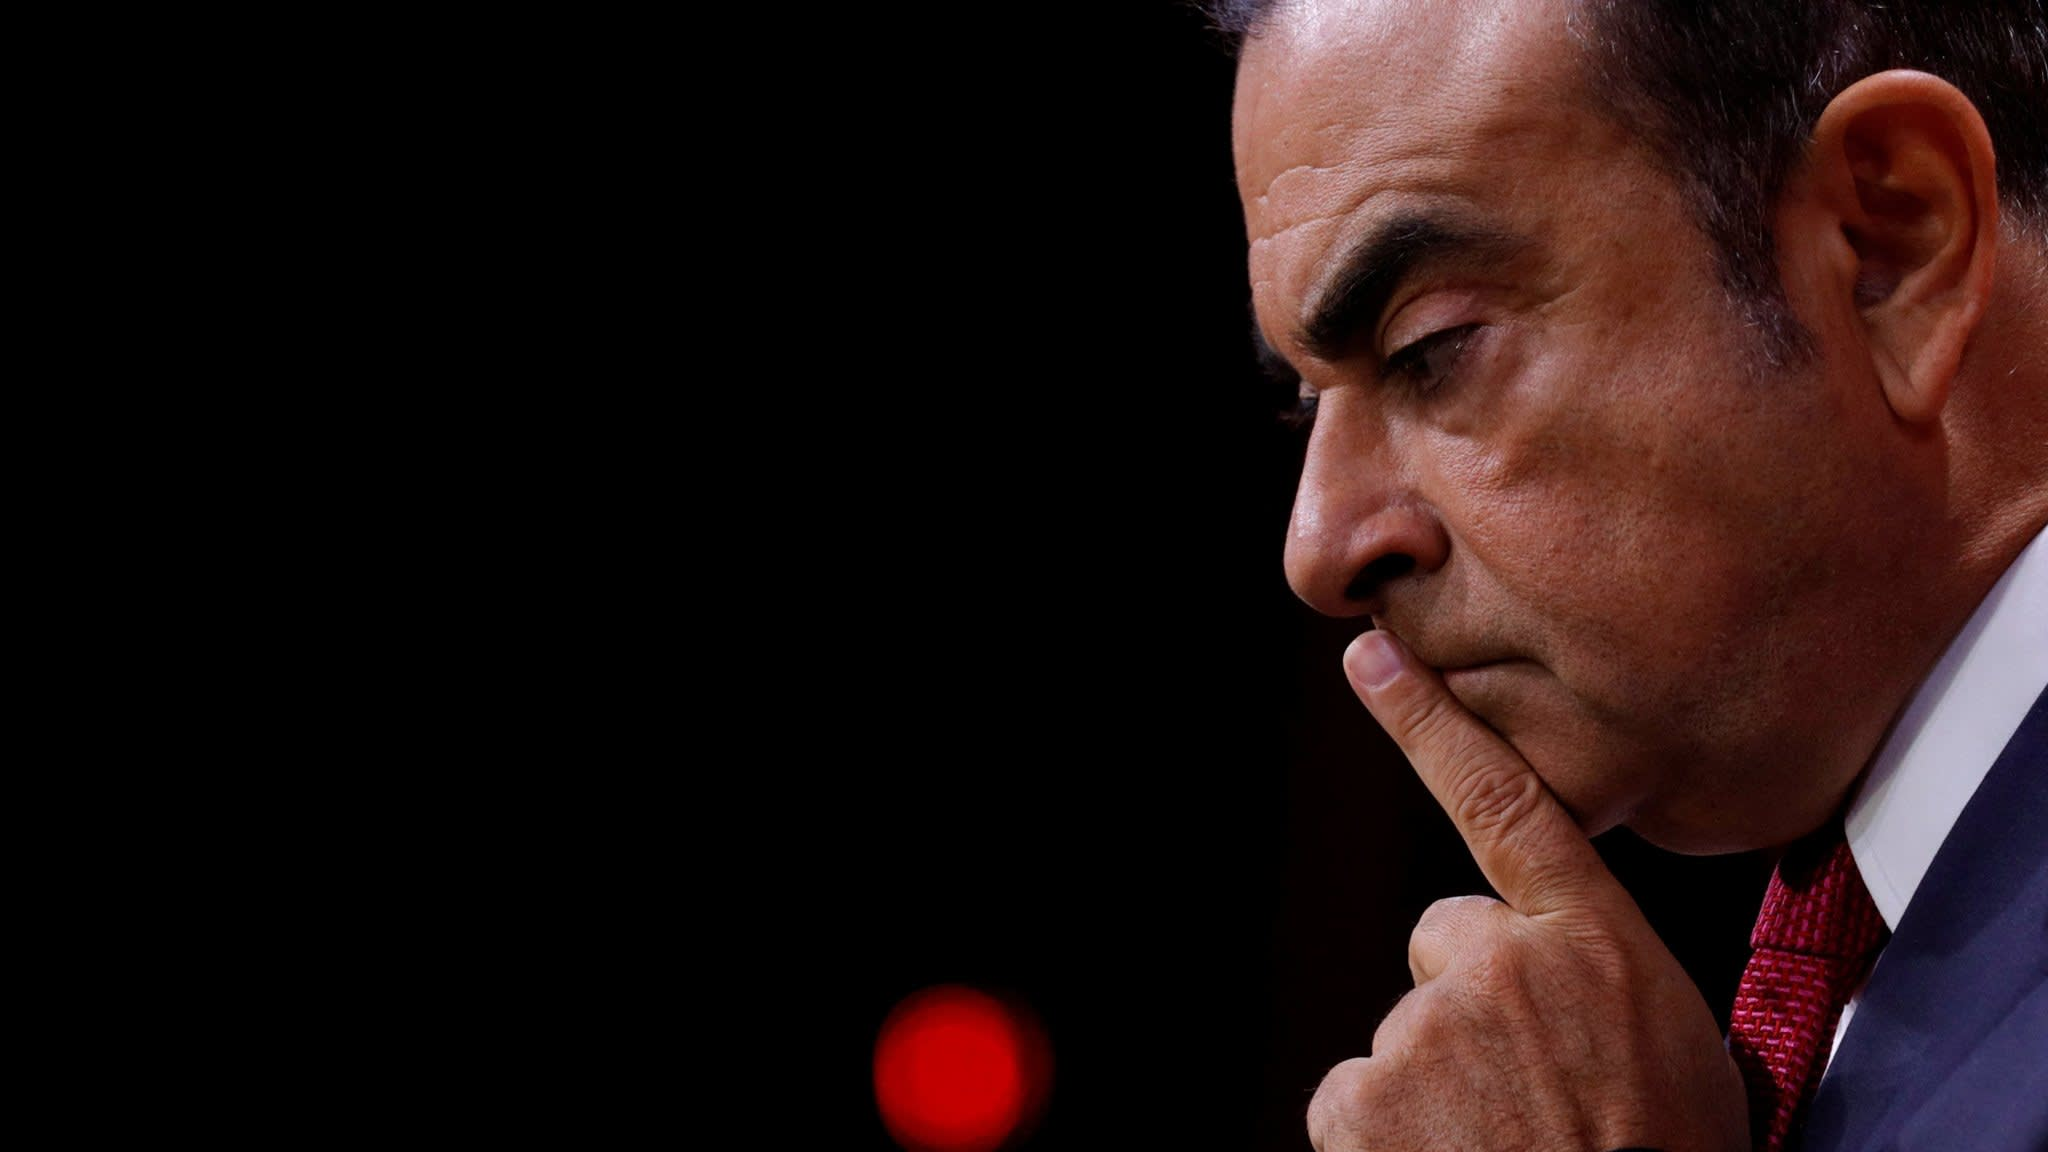 Carlos Ghosn said to deny Japanese accusations on pay